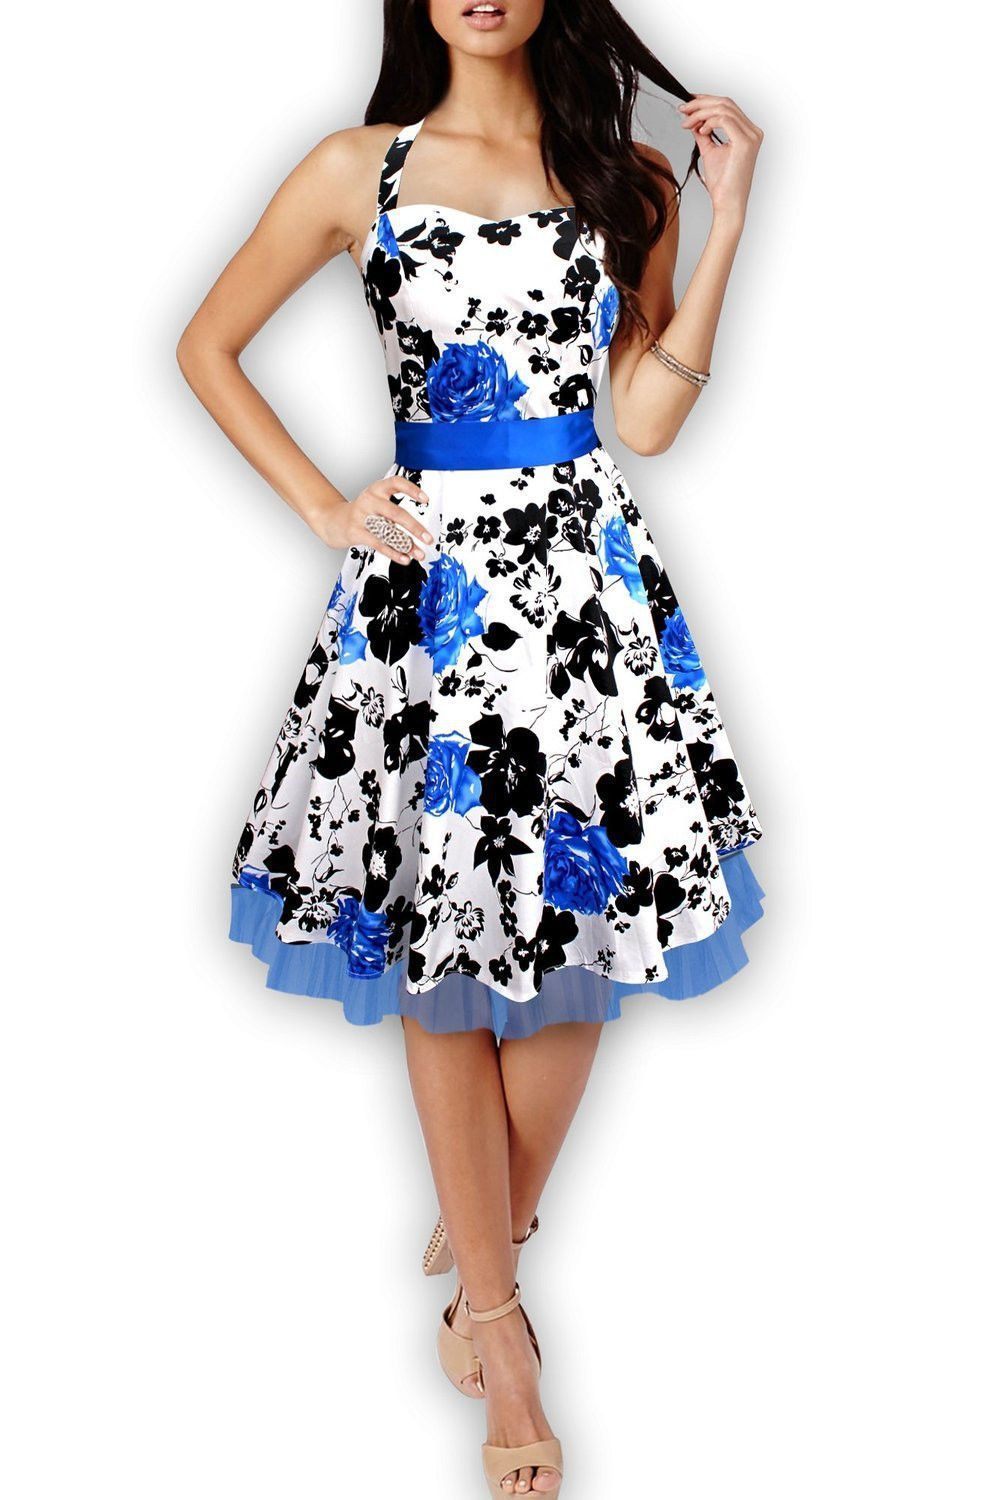 new summer style floral print party dresses women rockabilly